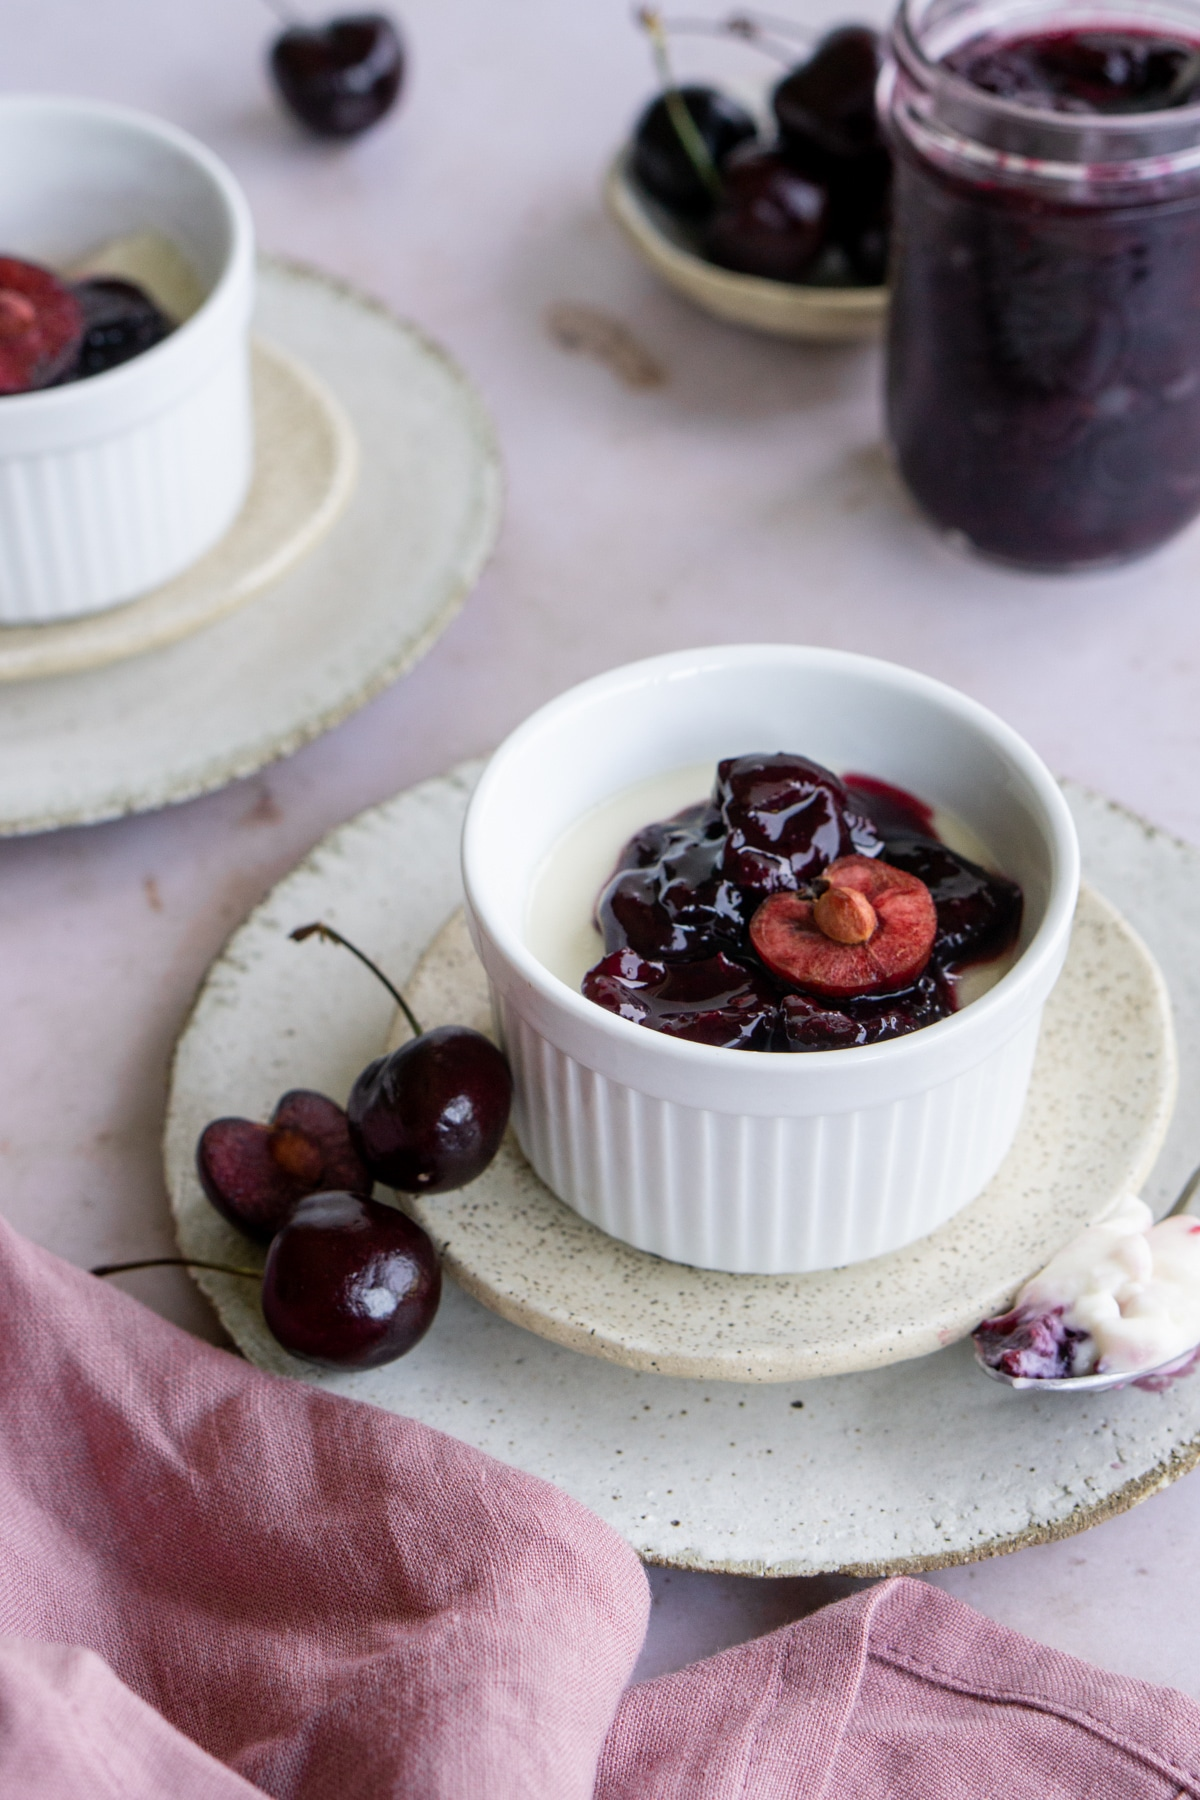 Italian panna cotta in a ramekin surrounded by fresh cherries and a pink napkin